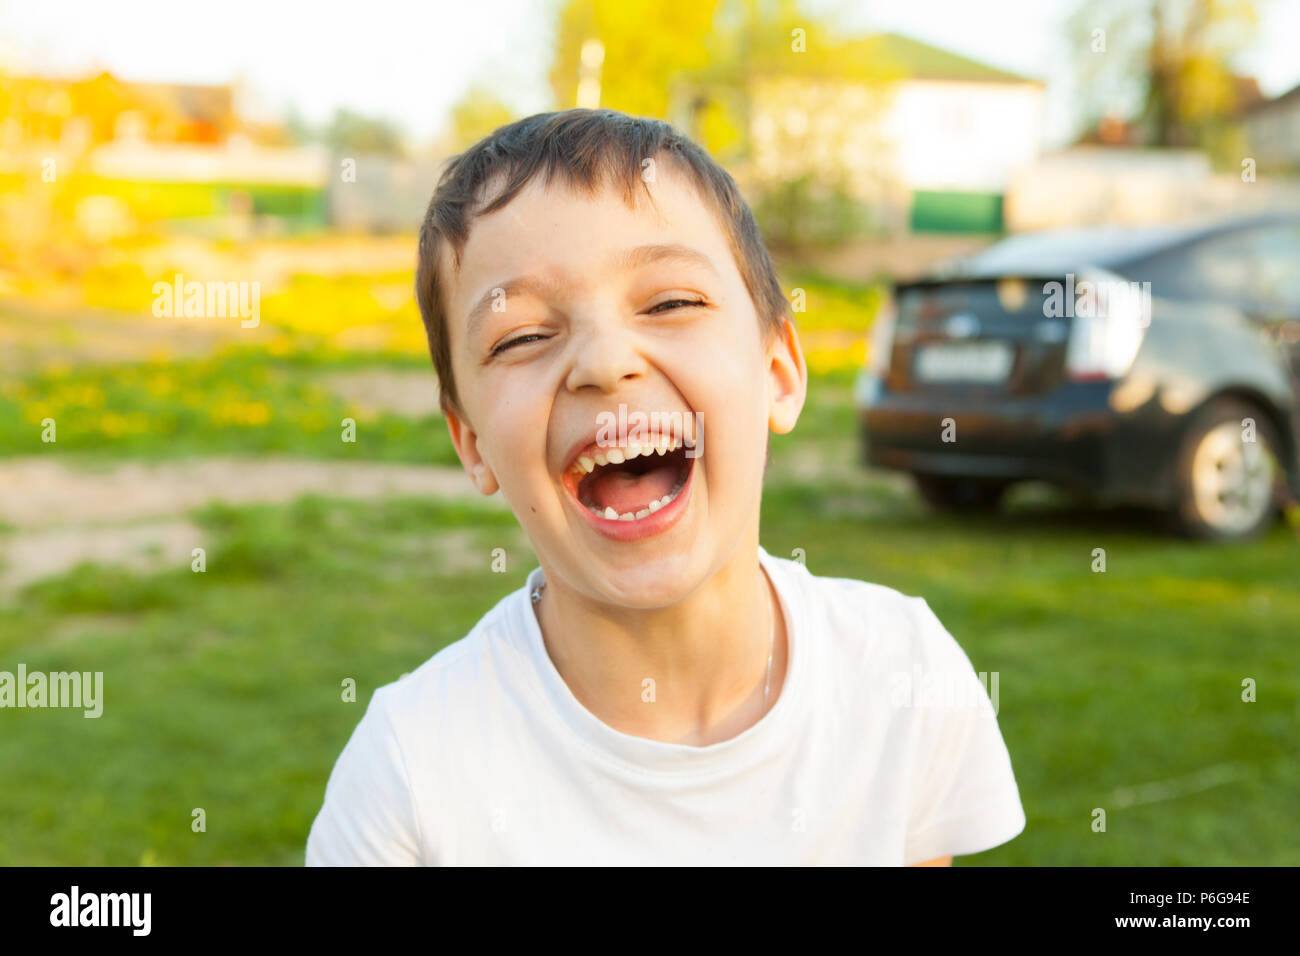 boy is laughing loudly in cafe - Stock Image